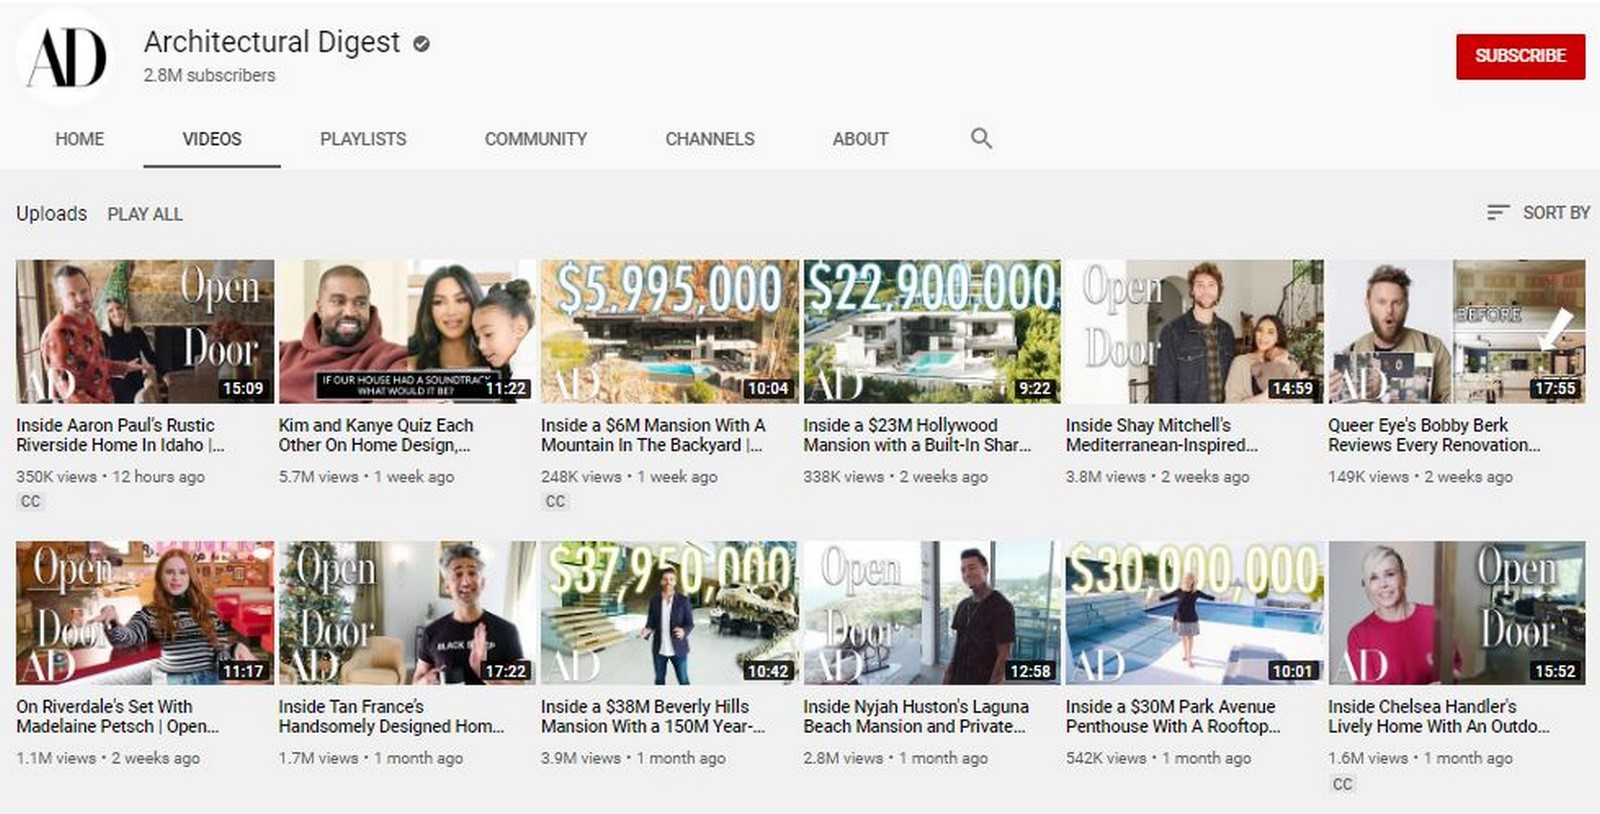 Youtube for Architects: Architectural Digest